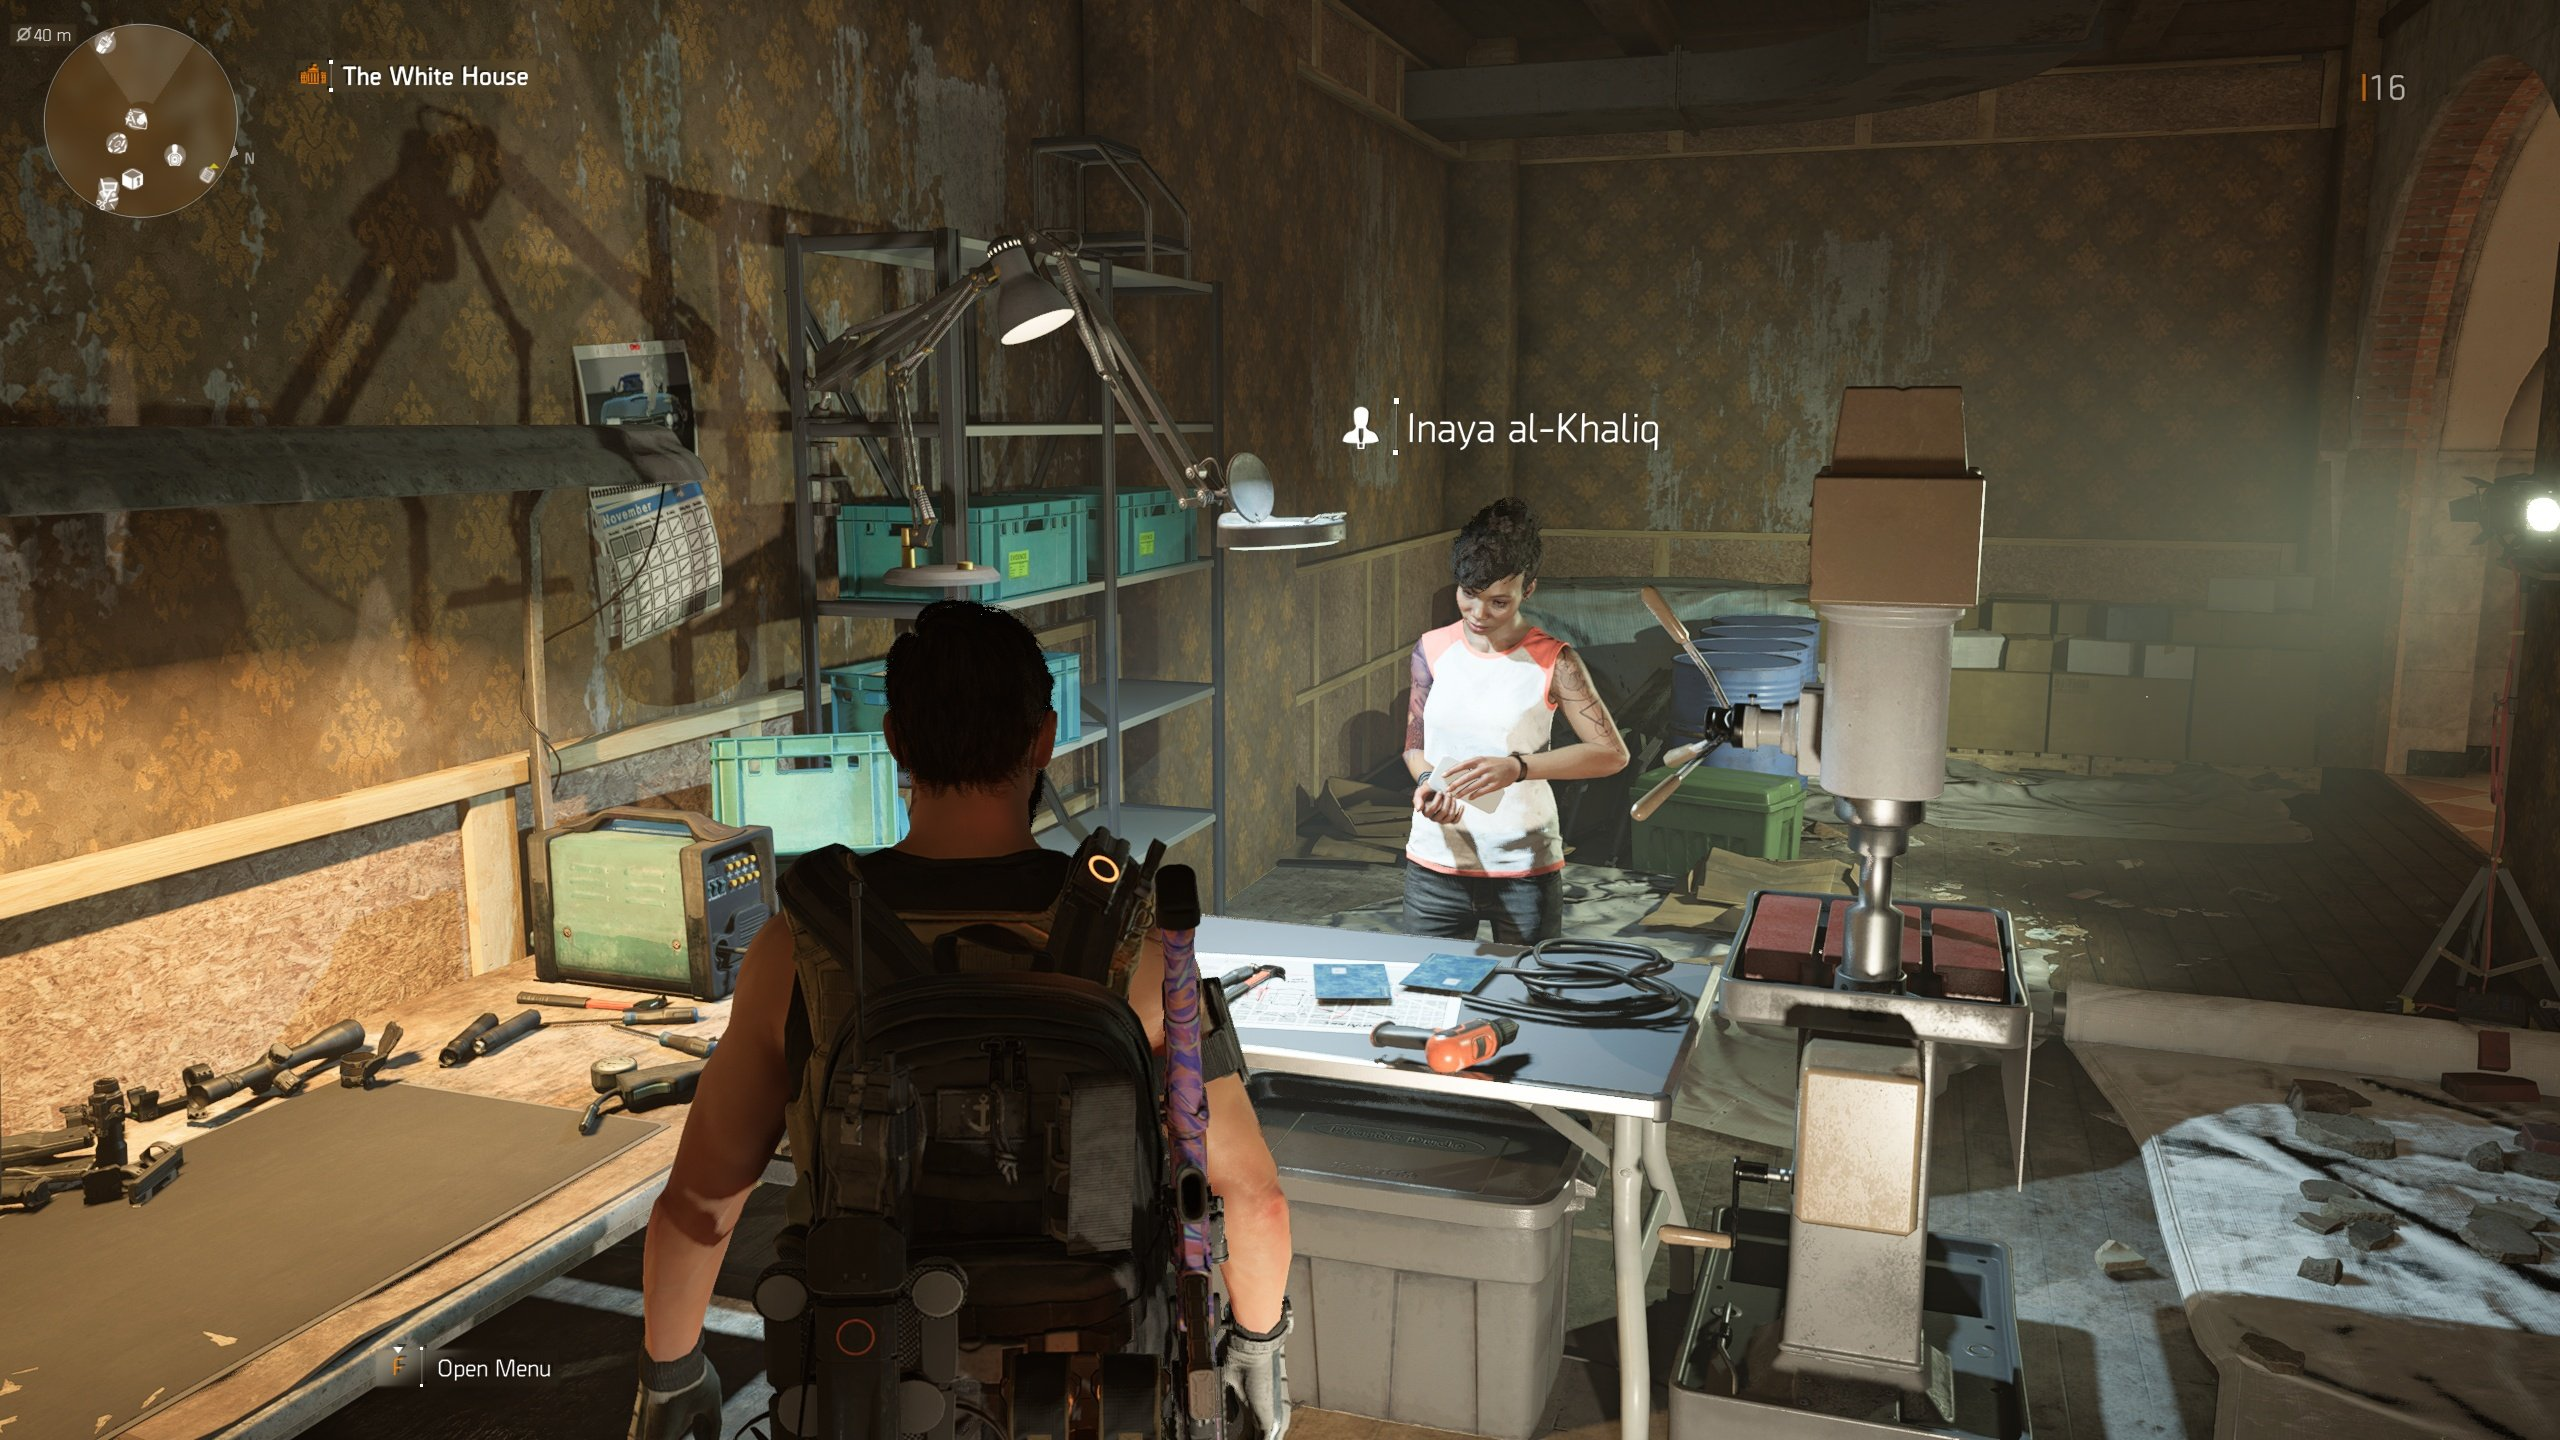 Talk to Inaya to unlock crafting in The Division 2.